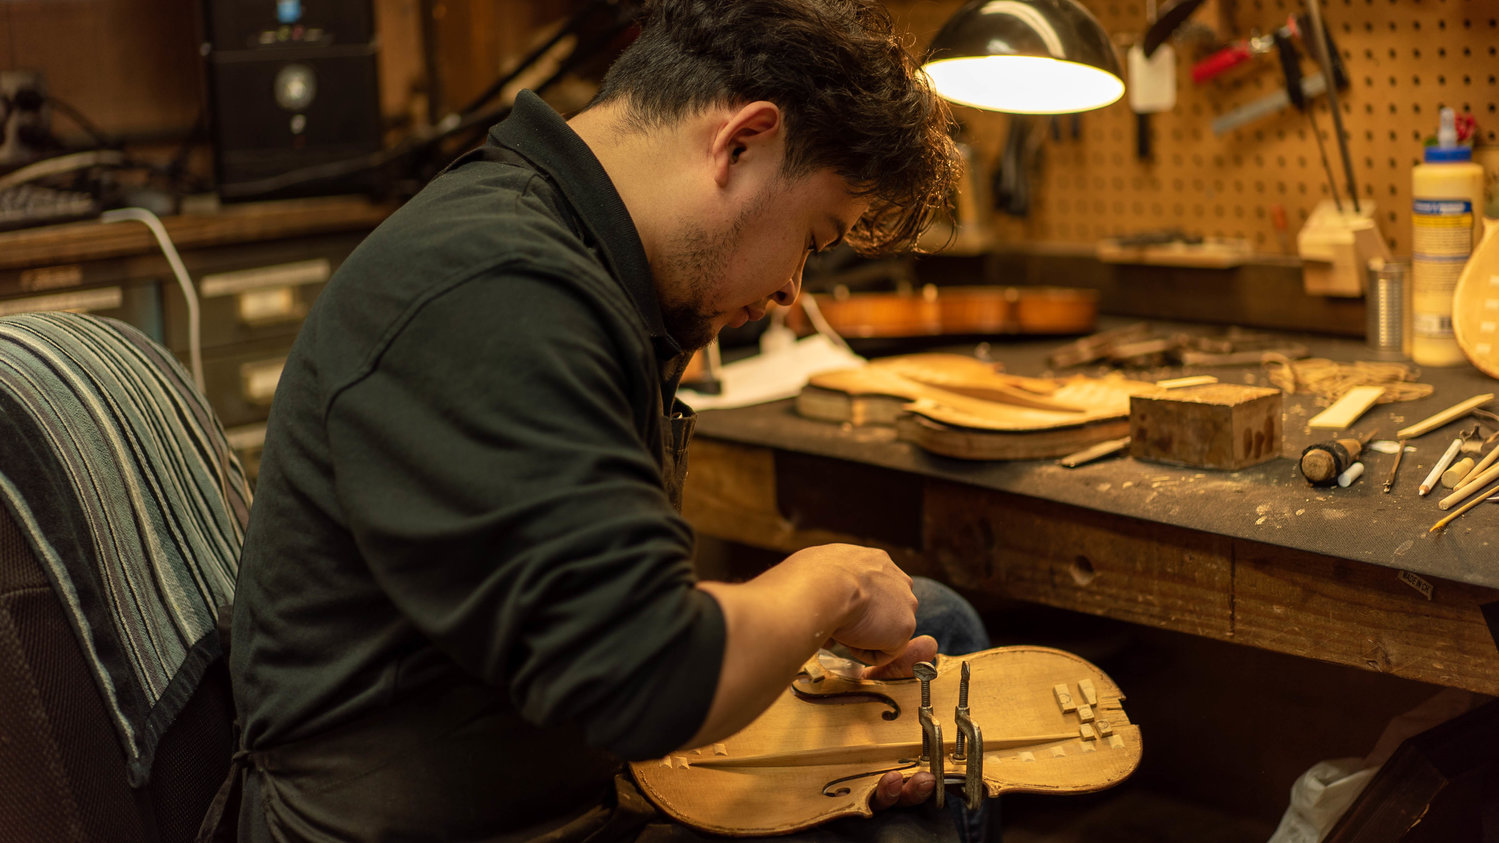 Rigo Dubon worked on a violin in the shop.